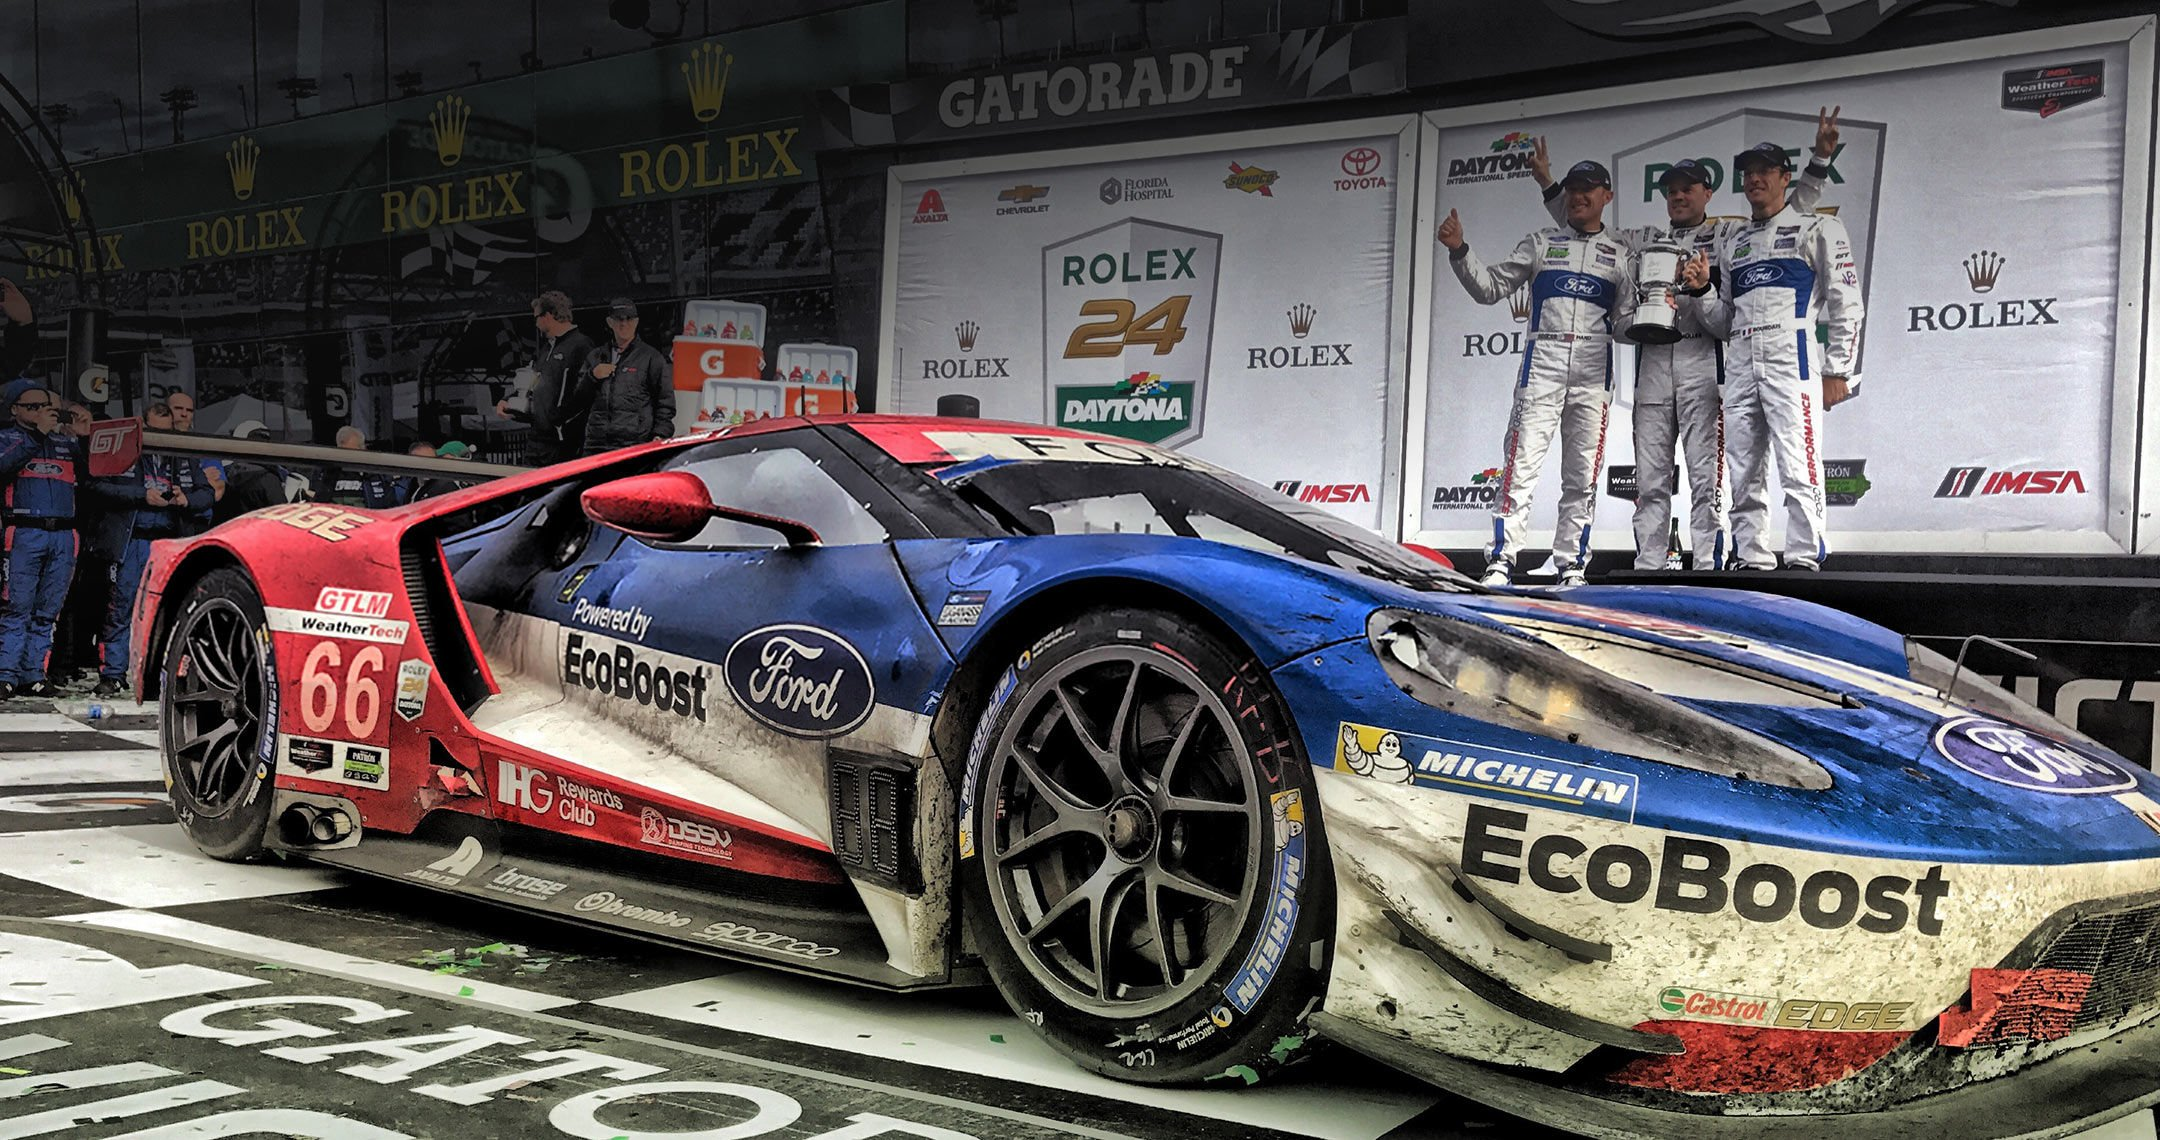 Ford Gt Inside >> Ford GT LM GTE-PRO coming to iRacing - Inside Sim Racing